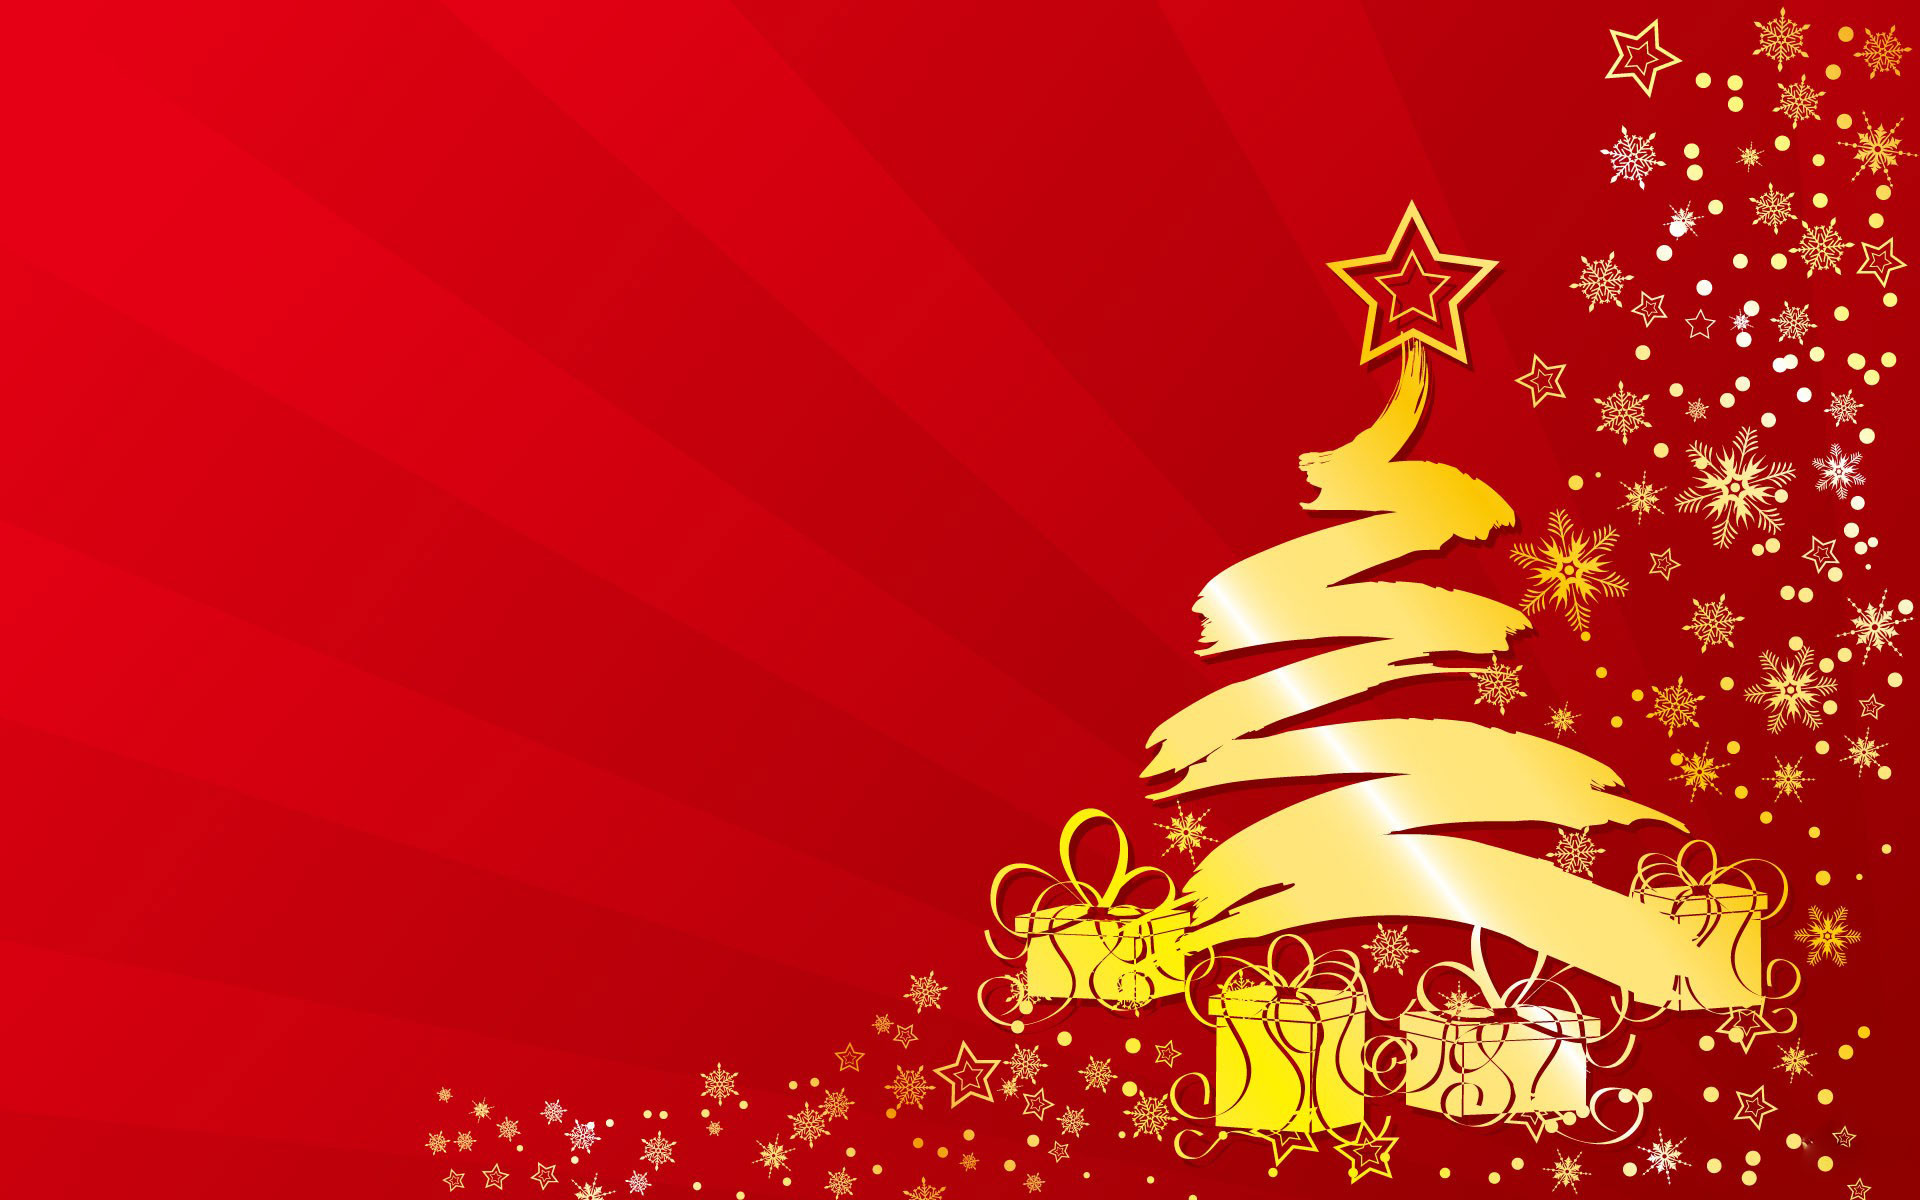 1920x1200 'best-tree-background-wallpaper-christmas-desktop-22740.jpg'